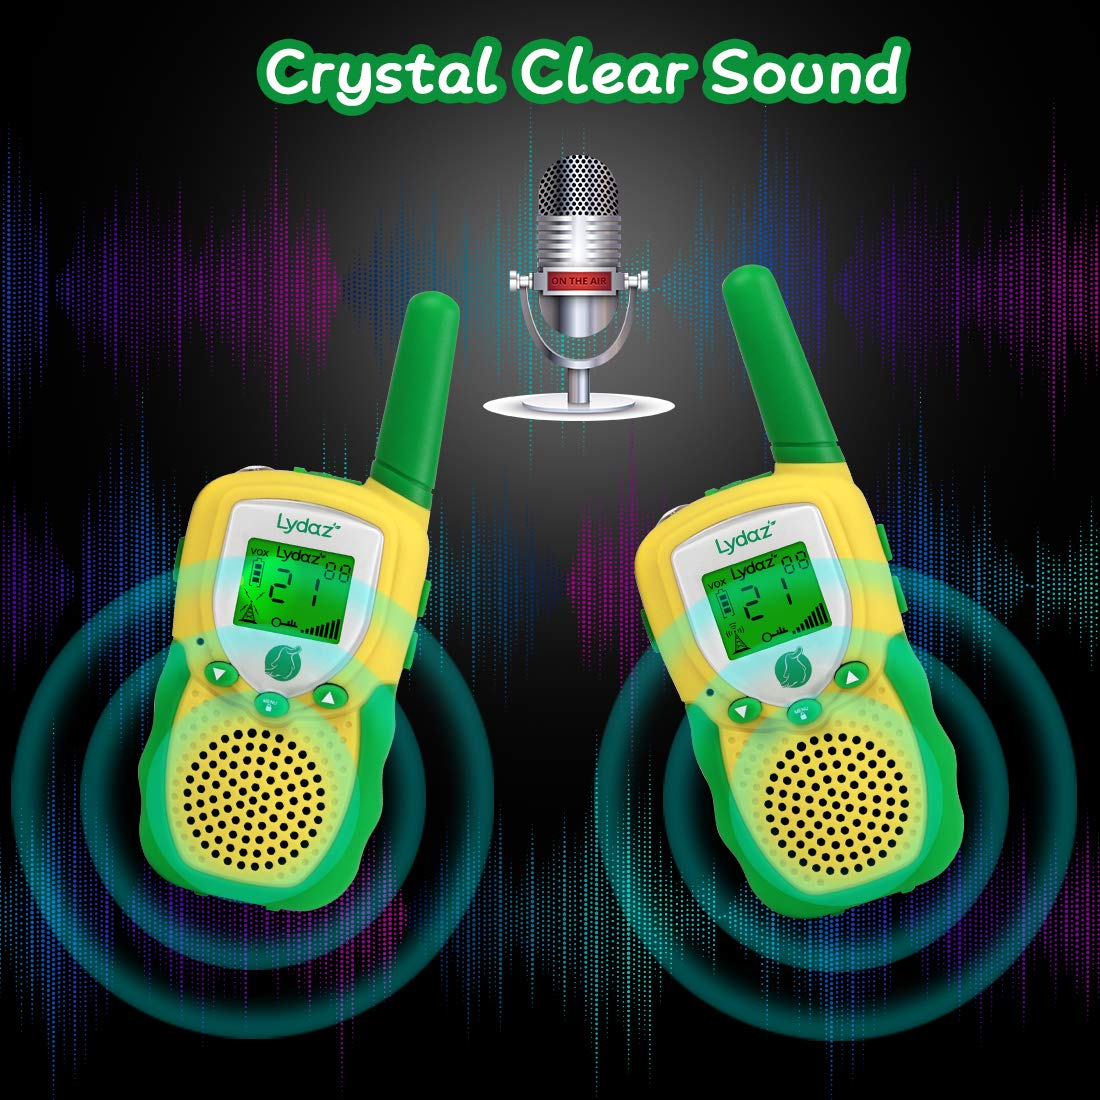 Lydaz Walkie Talkies for Kids with 2'' Backlit LCD Flashlight - 22 Channels 2 Way Radios 3 Miles Range Long Distance - Toys for Boys Girls Outdoor Adventures Hiking Camping - 2 Pack by Lydaz (Image #2)